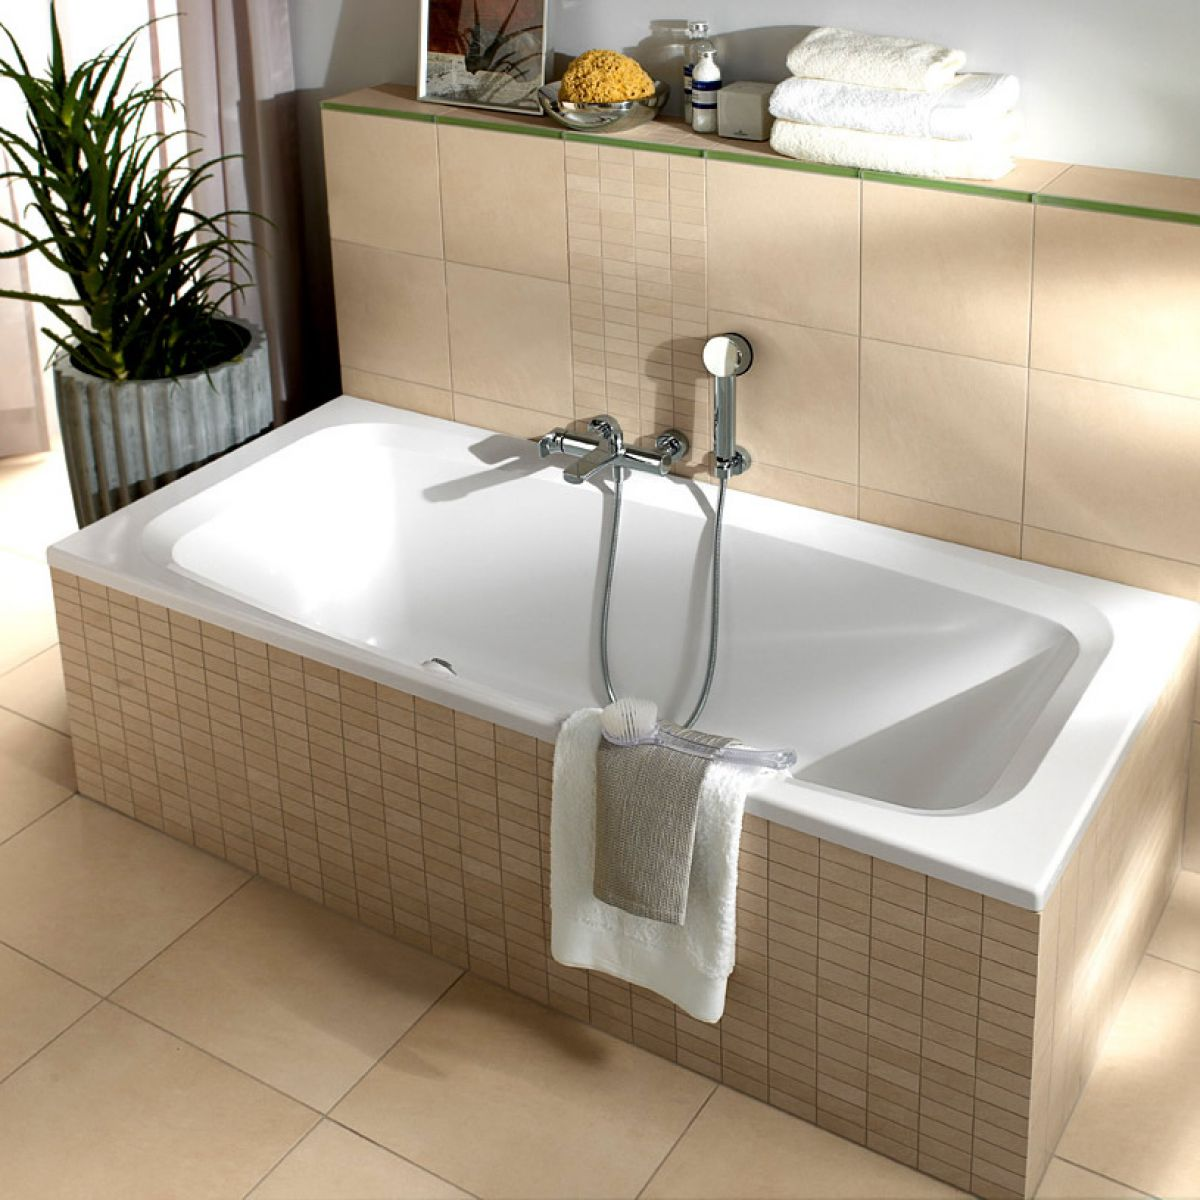 villeroy and boch bathroom tiles villeroy amp boch bernina tiles 2393 30 x 30cm uk bathrooms 24494